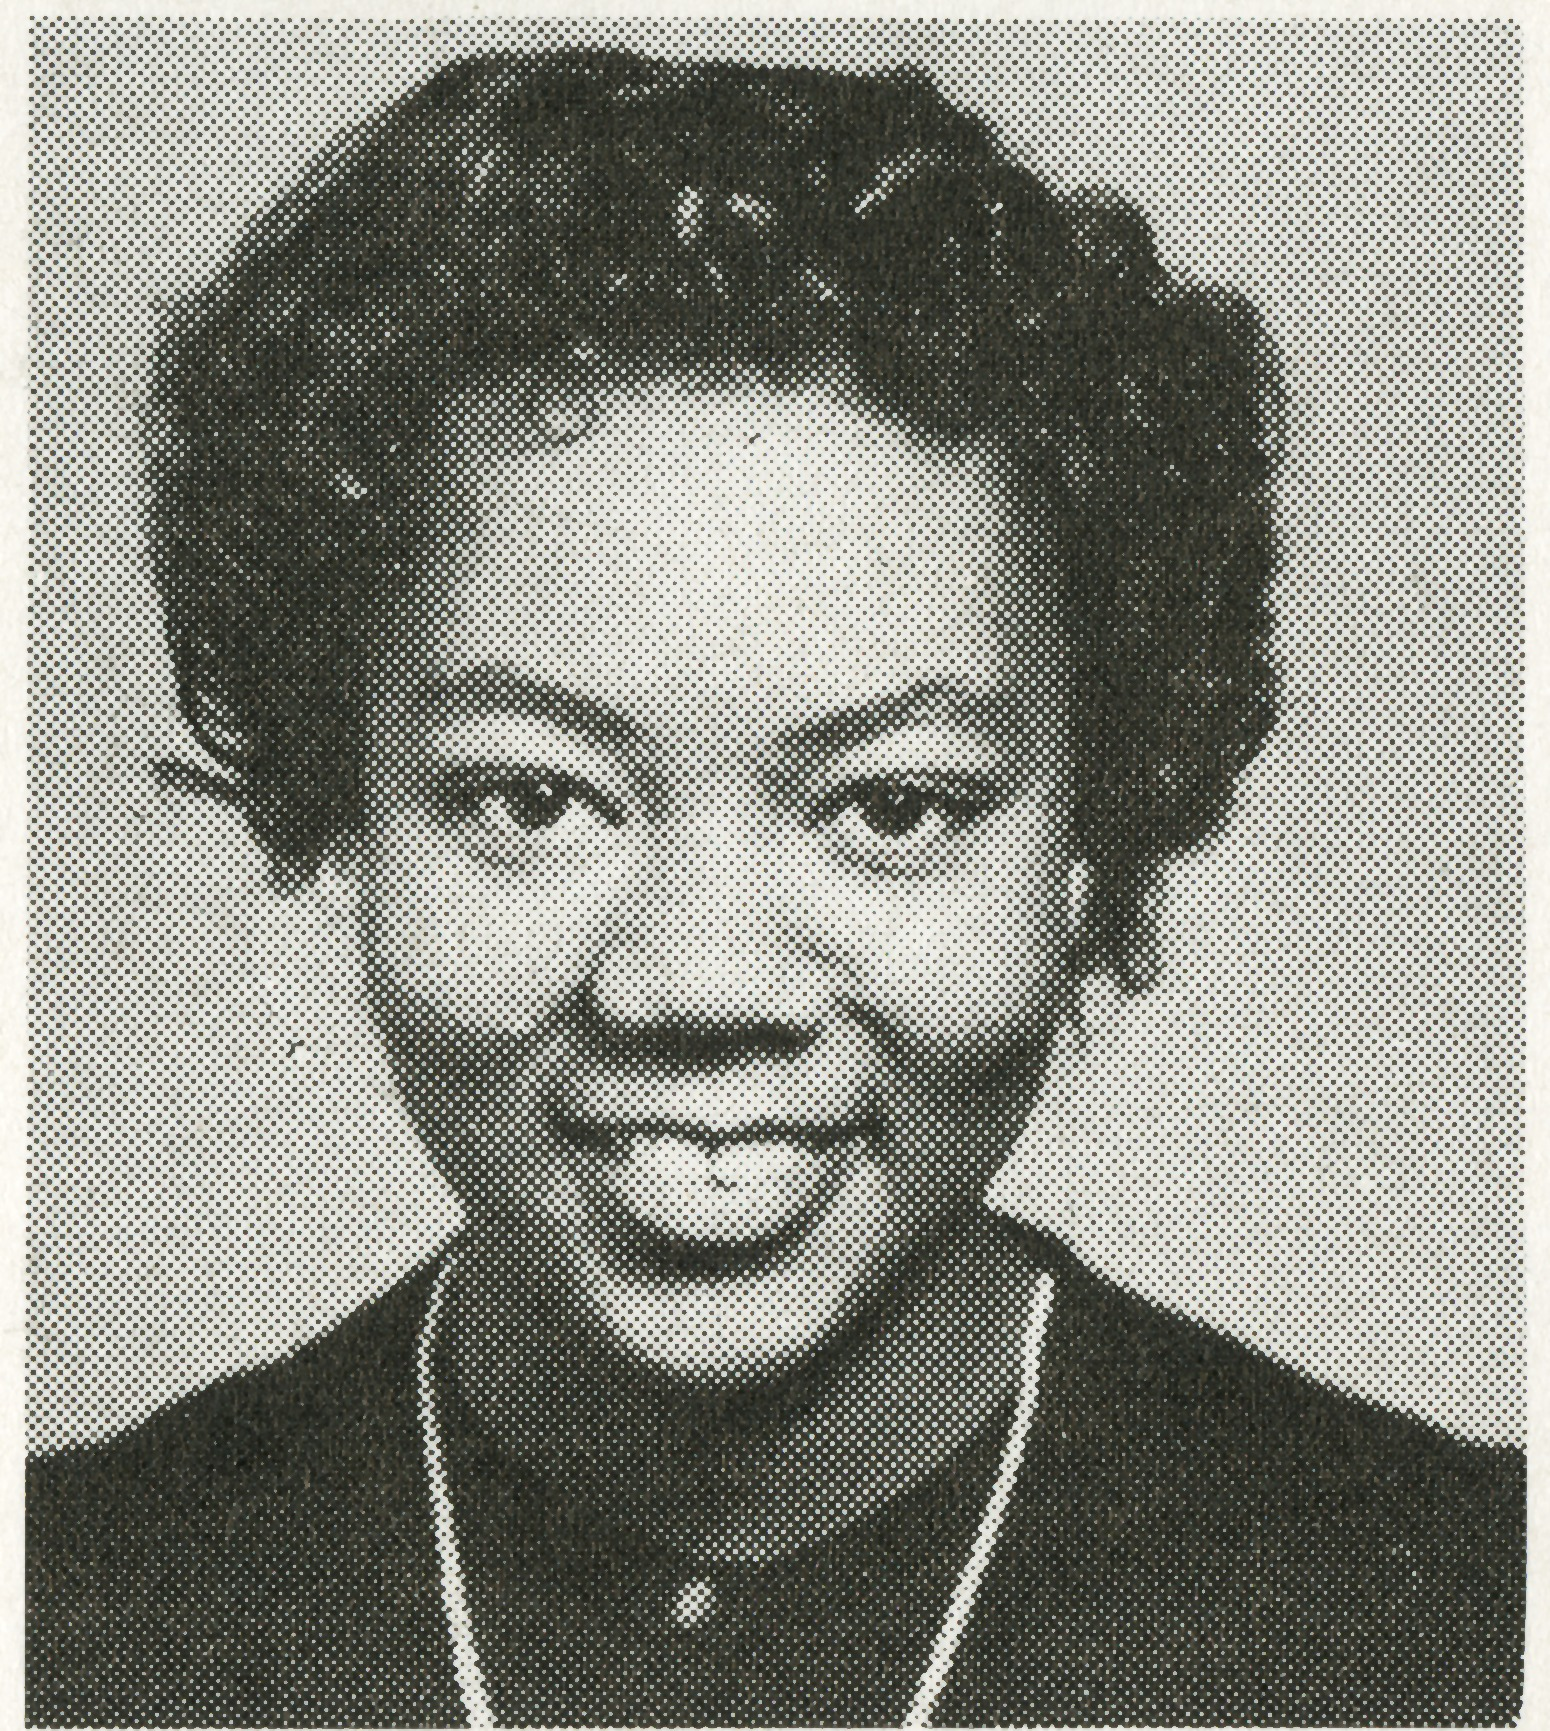 lydia_tucker_yearbook_cc_1960.jpeg